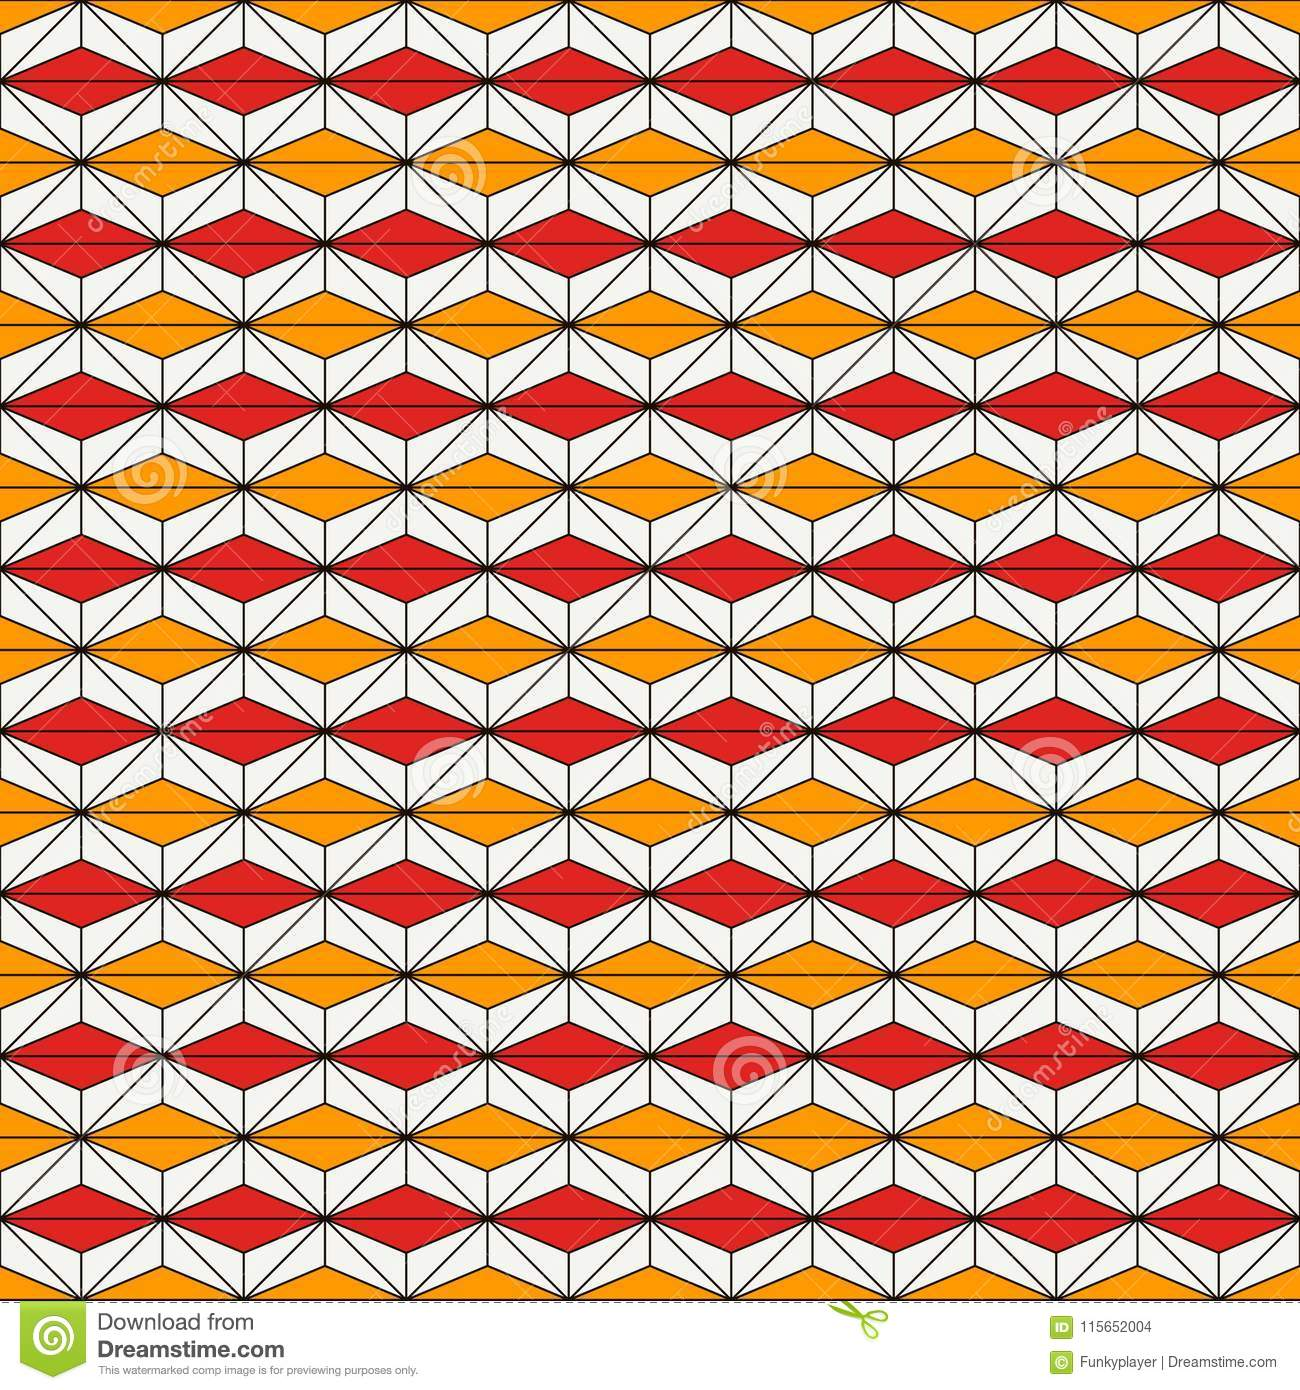 African style seamless pattern with abstract figures. Ethnic and tribal print. Geometric ornamental background